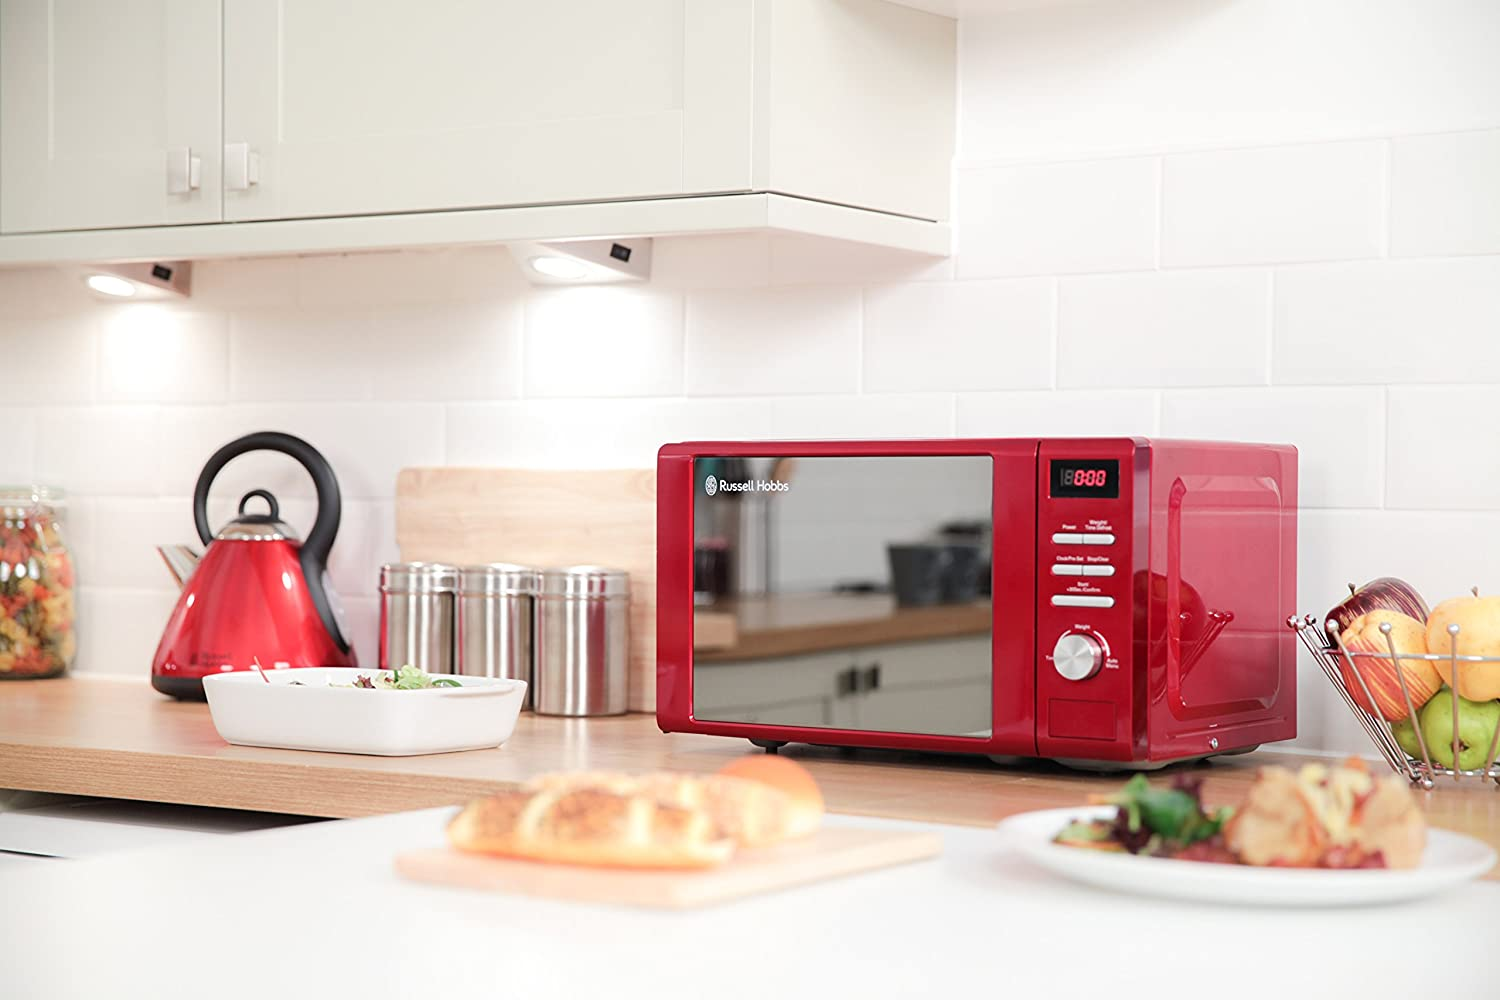 Russell Hobbs RHM2064R Red Digital Microwave